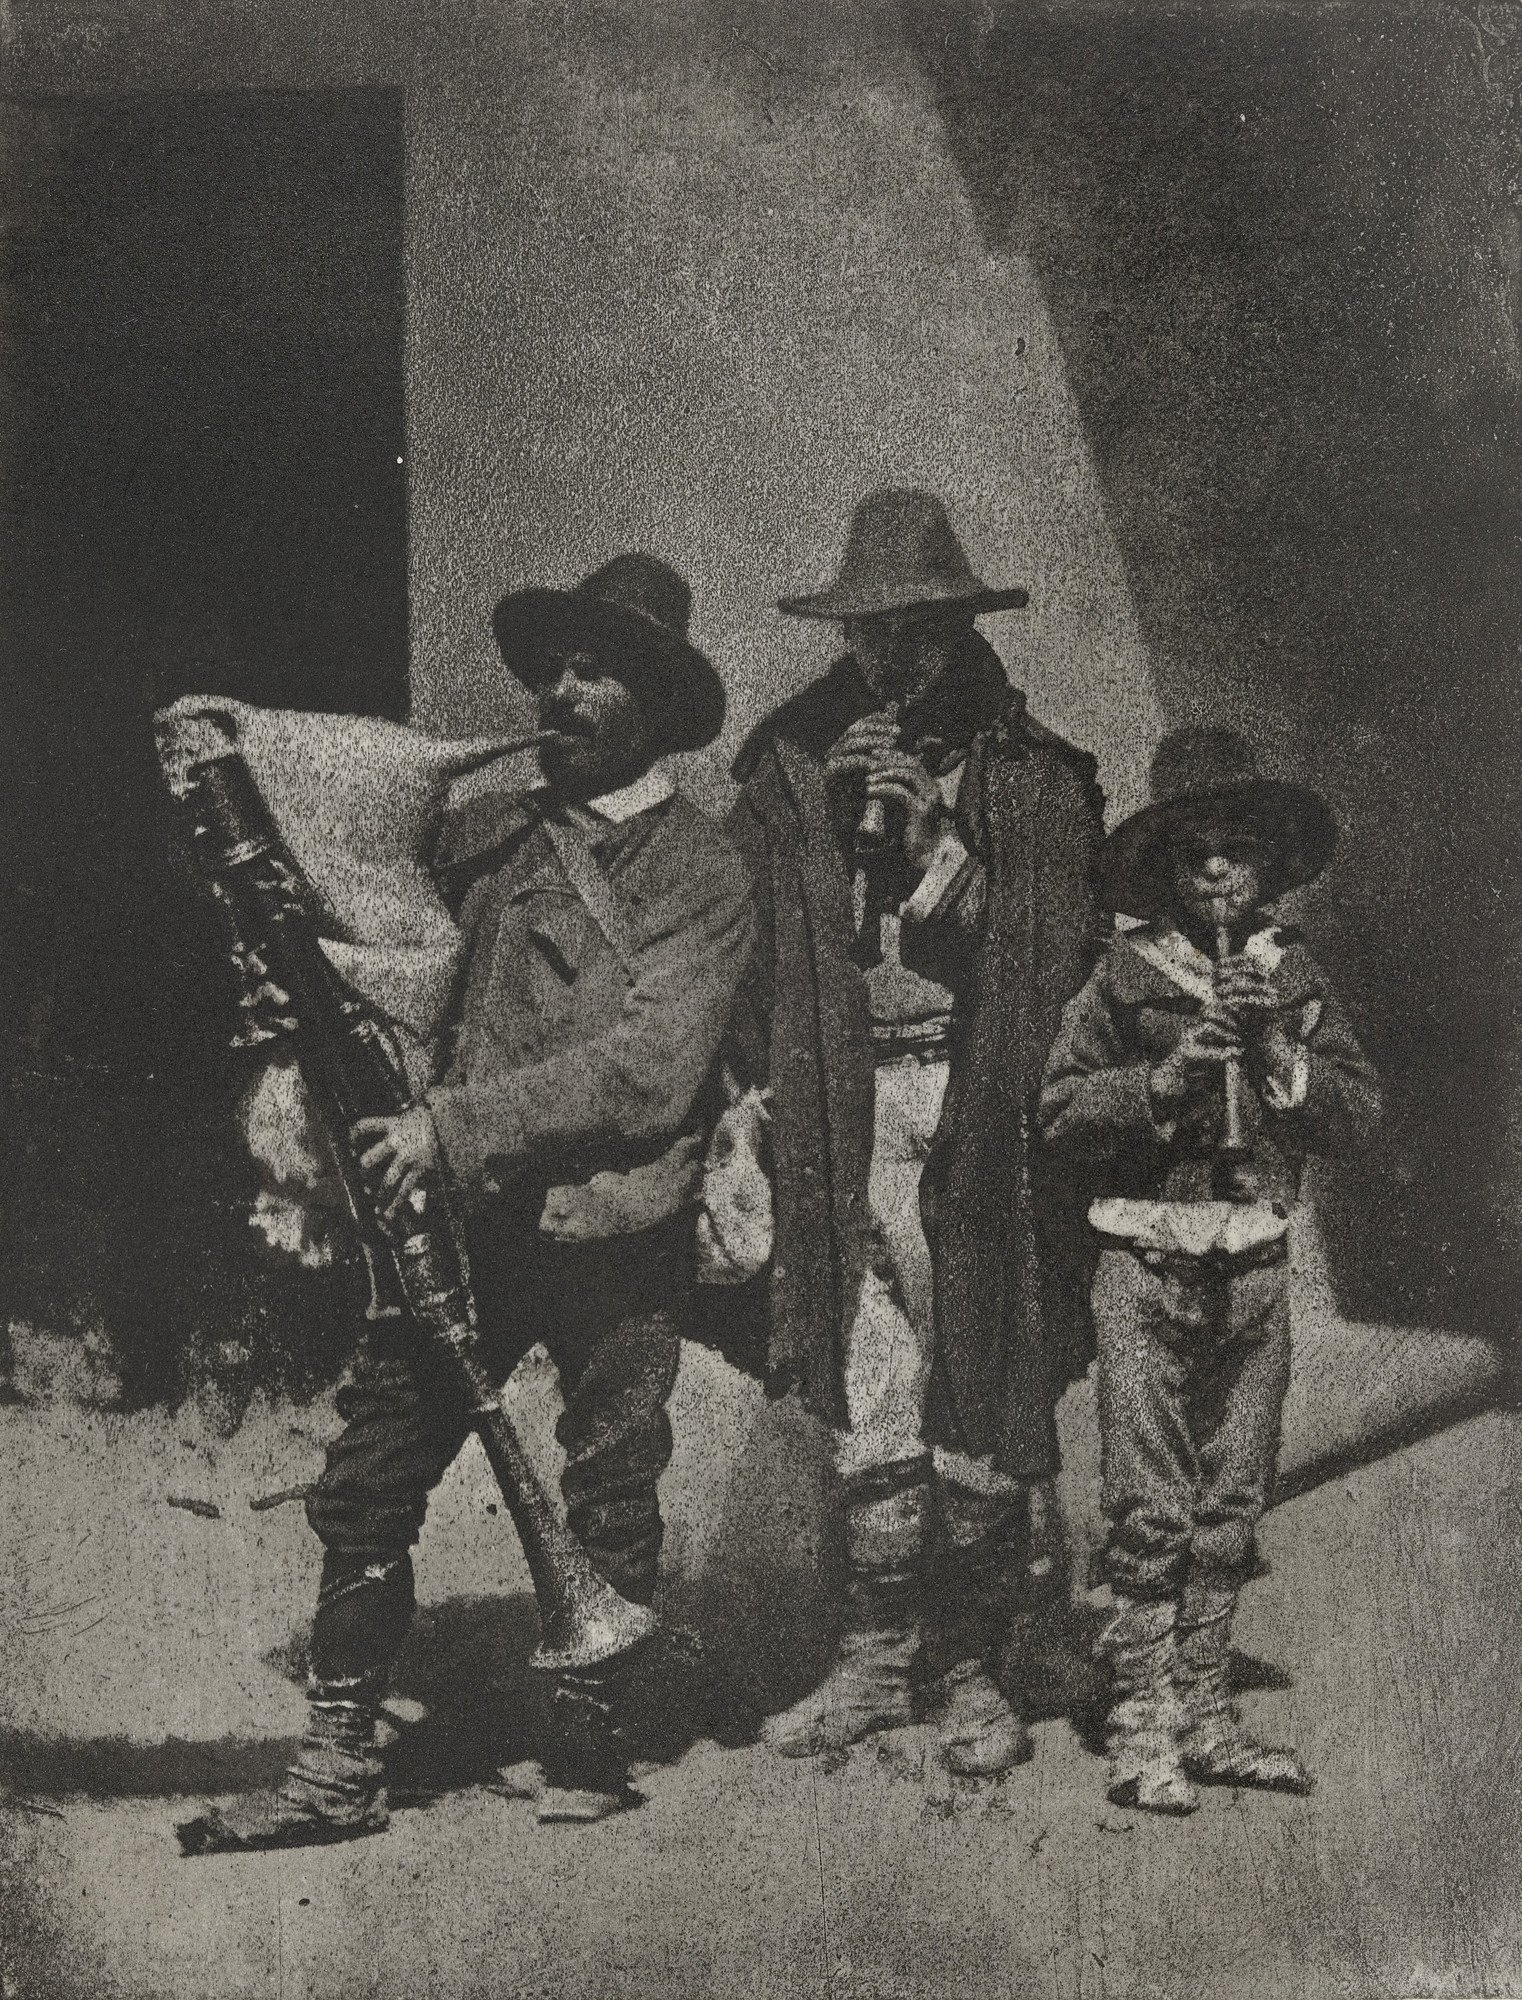 Charles Nègre. Group of Three Bag Pipers Standing on the Corner of 21 Quai Bourbon. 1854